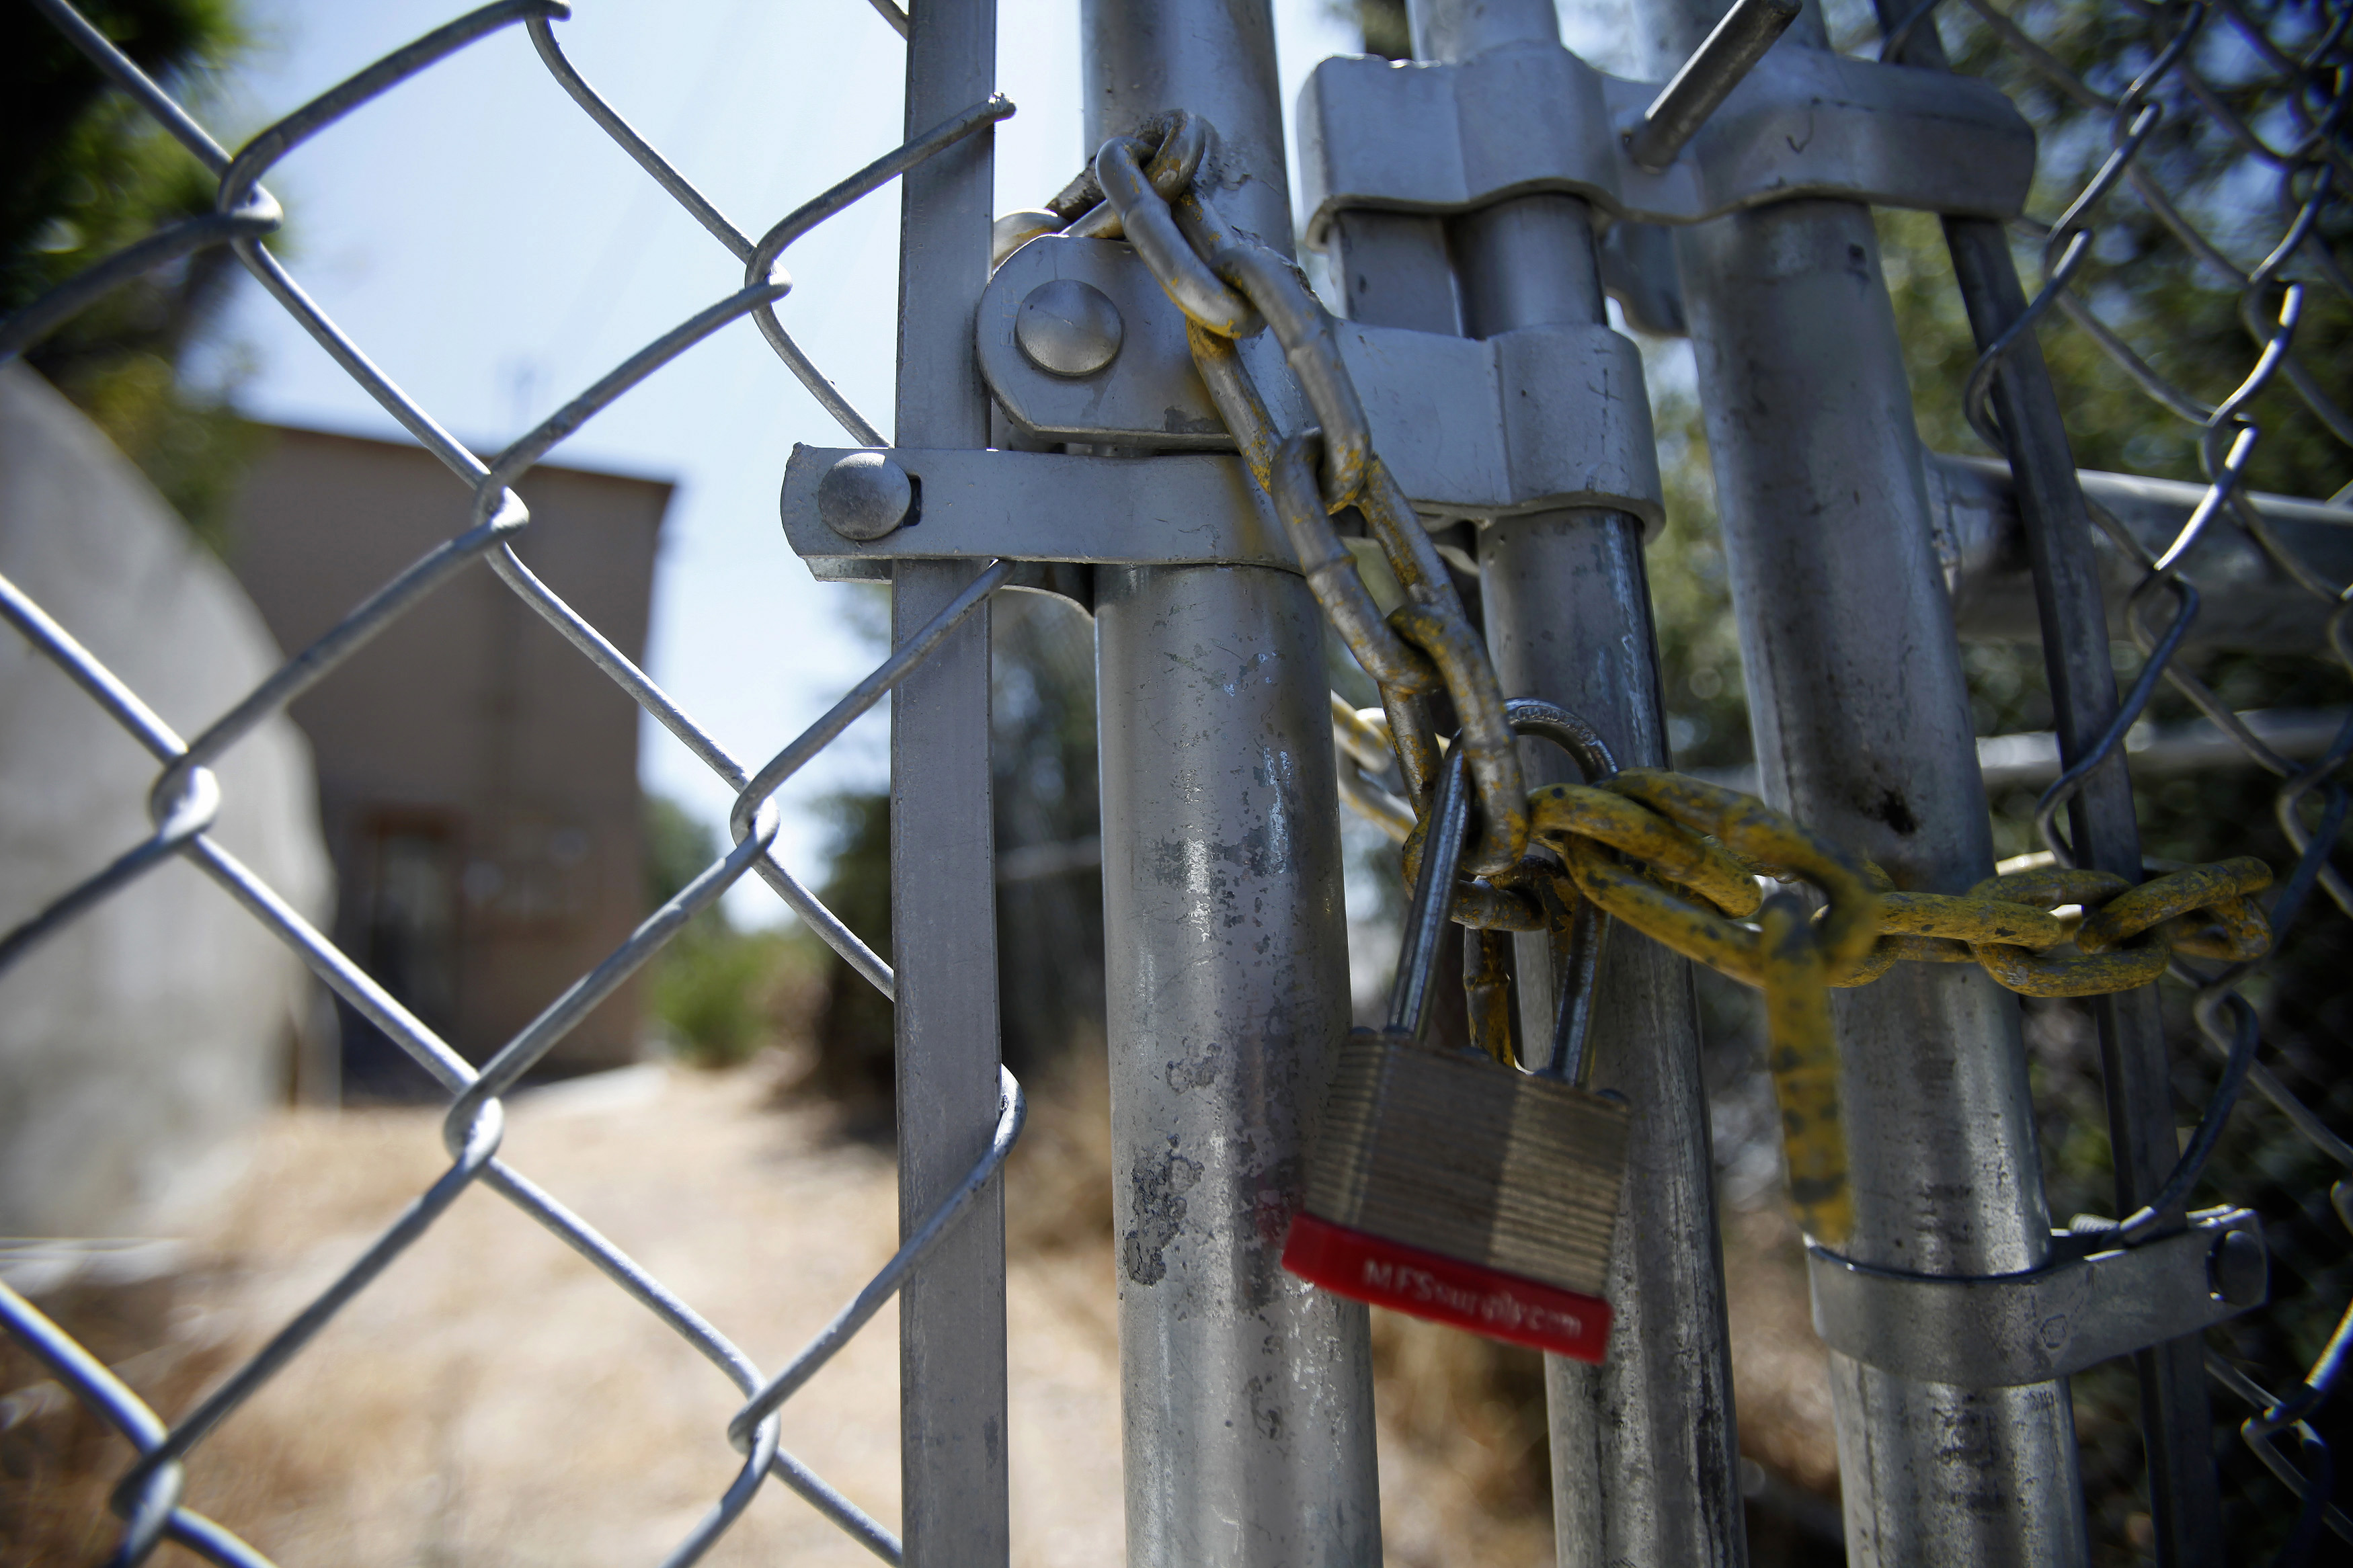 A lock secures a chain on the steel fence of a foreclosed home.